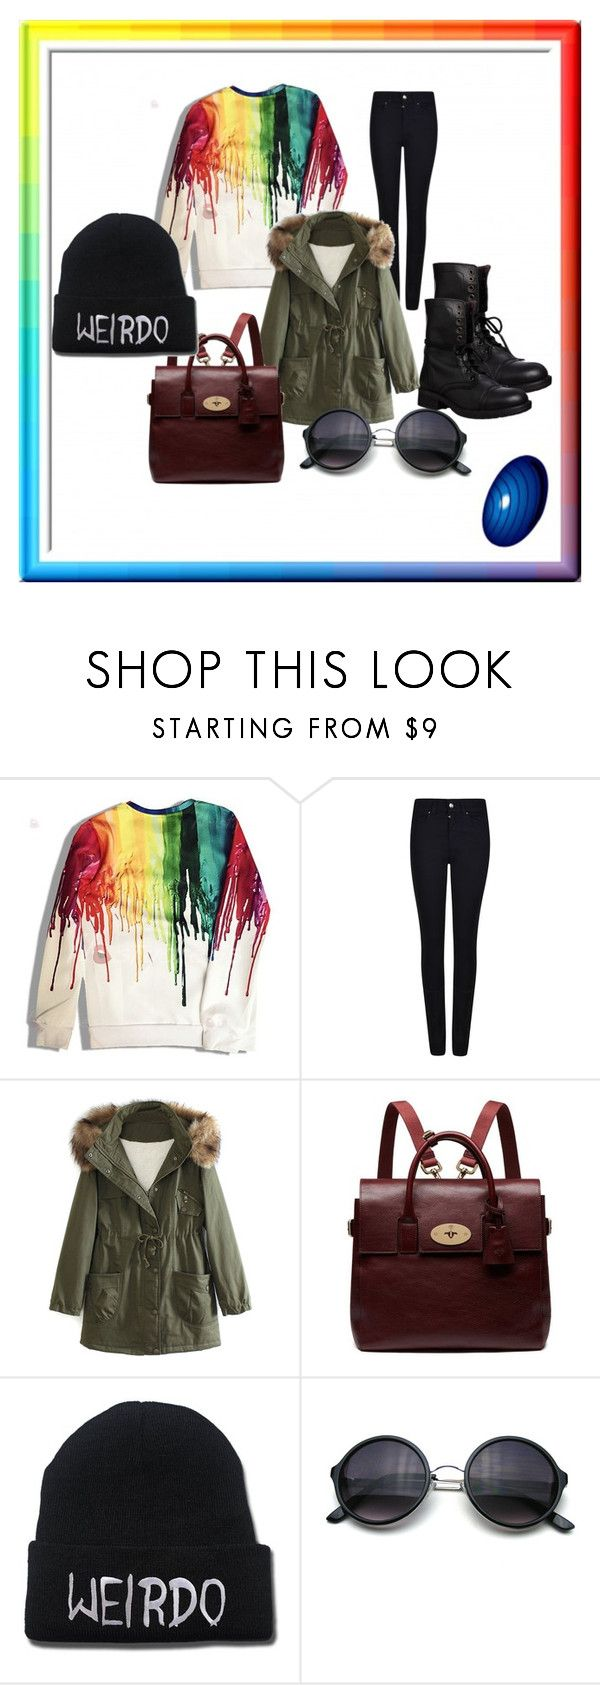 Dark and Rainbow by teodora-hristova on Polyvore featuring WithChic, Armani Jeans, Steve Madden, Mulberry, women's clothing, women's fashion, women, female, woman and misses